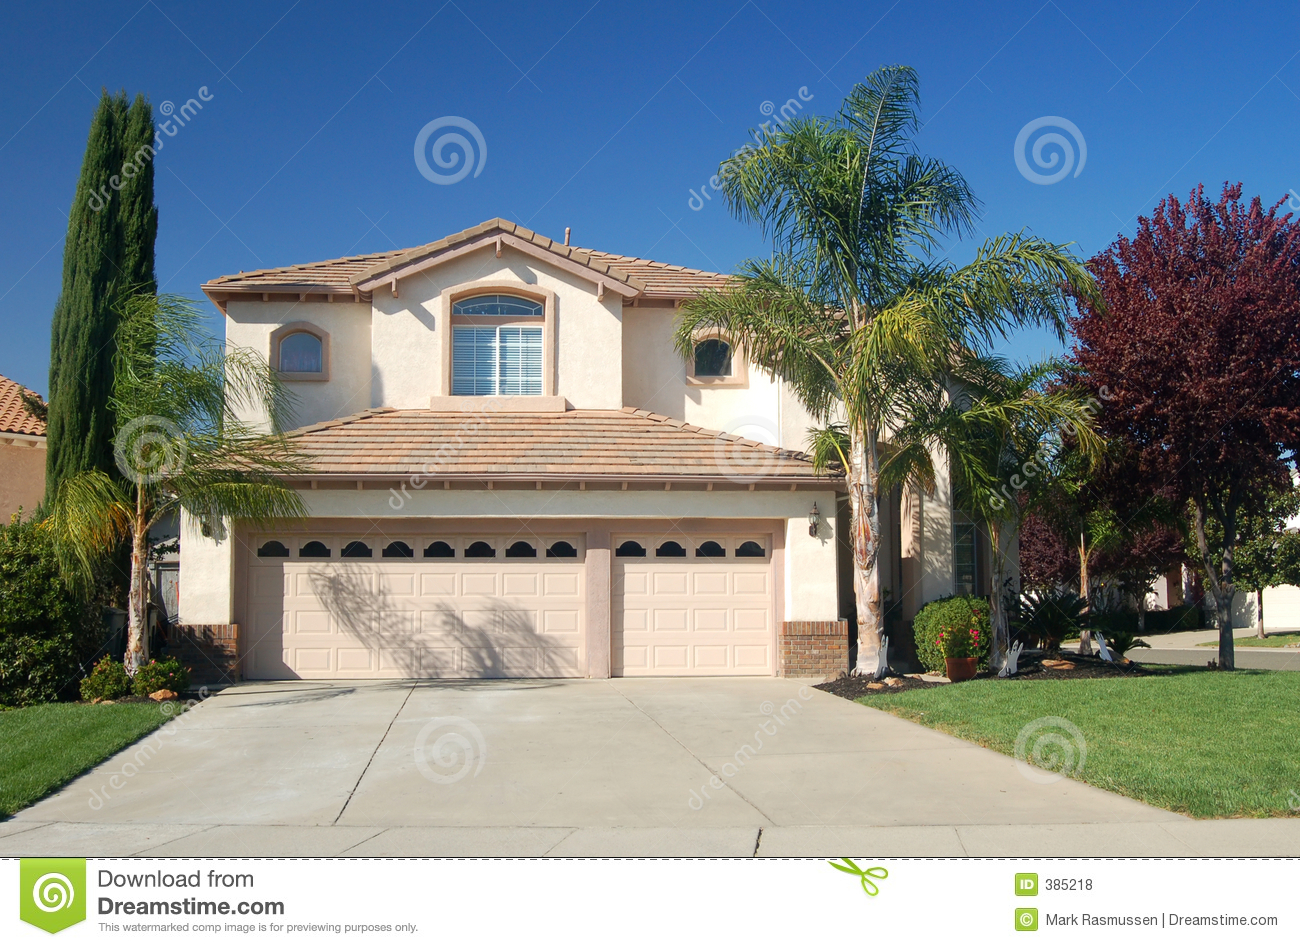 Nice house in california stock photo image of nice for Nice home photos